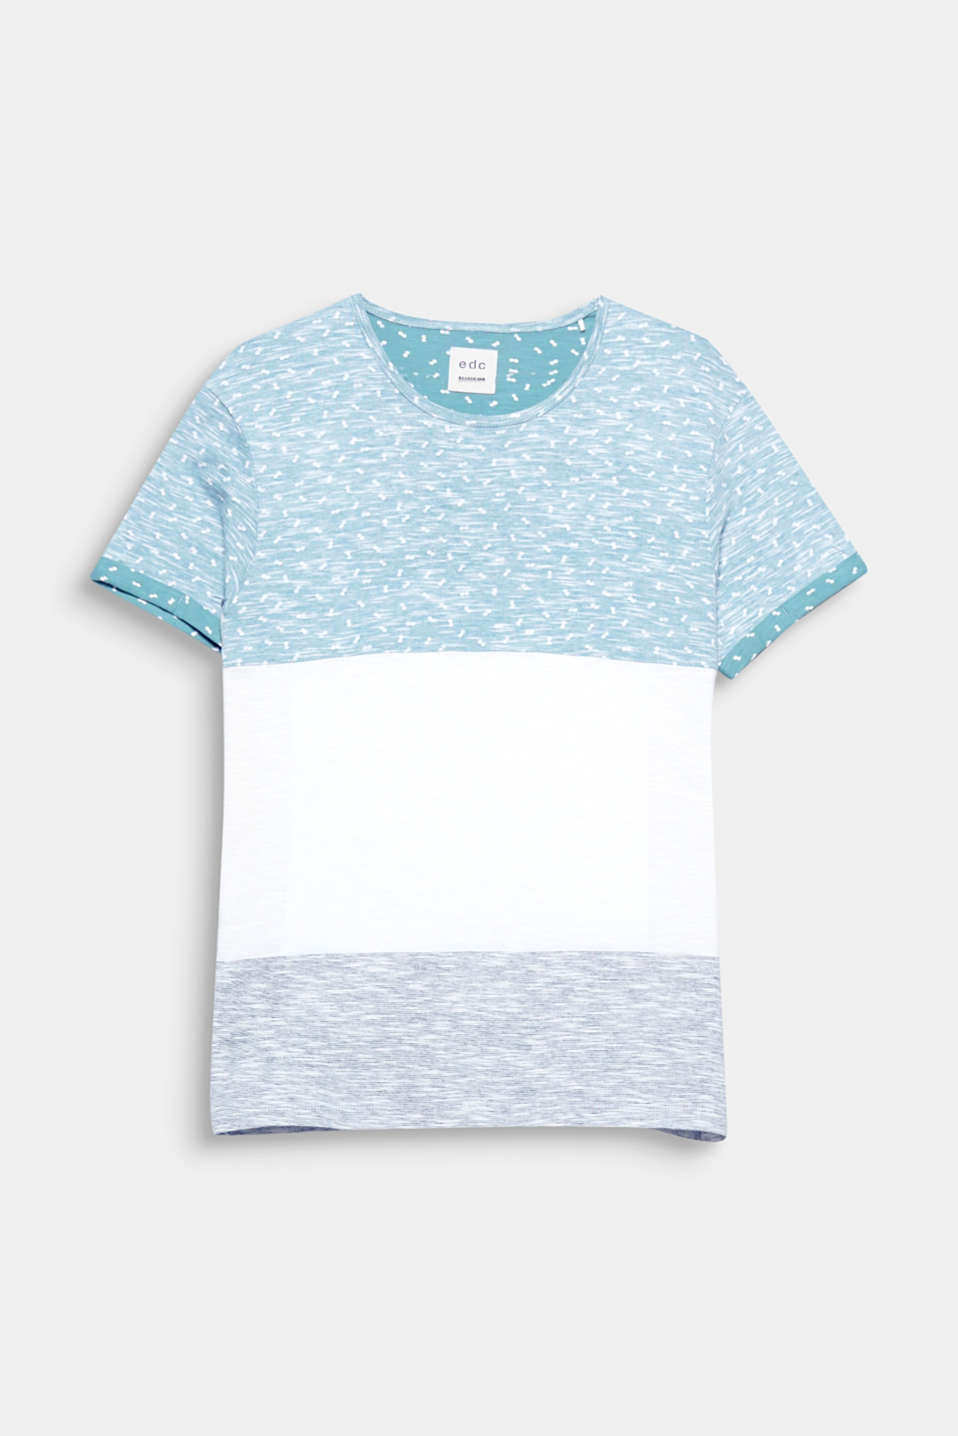 The exciting texture mix gives this T-shirt a thrilling look.